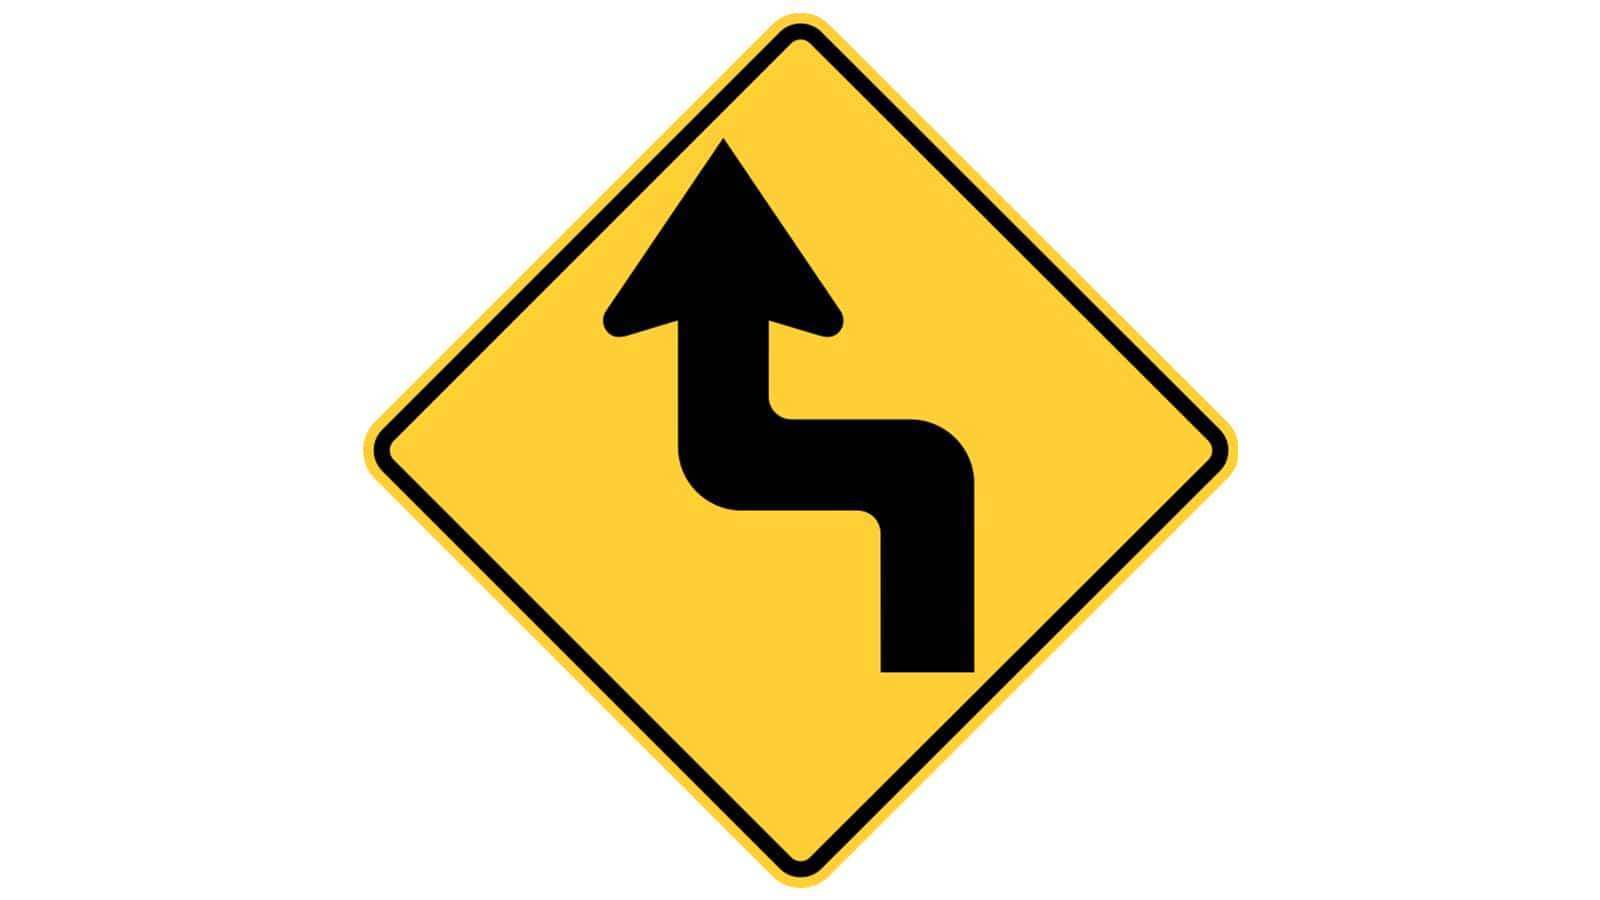 Warning sign reverse turn (first turn to the left)